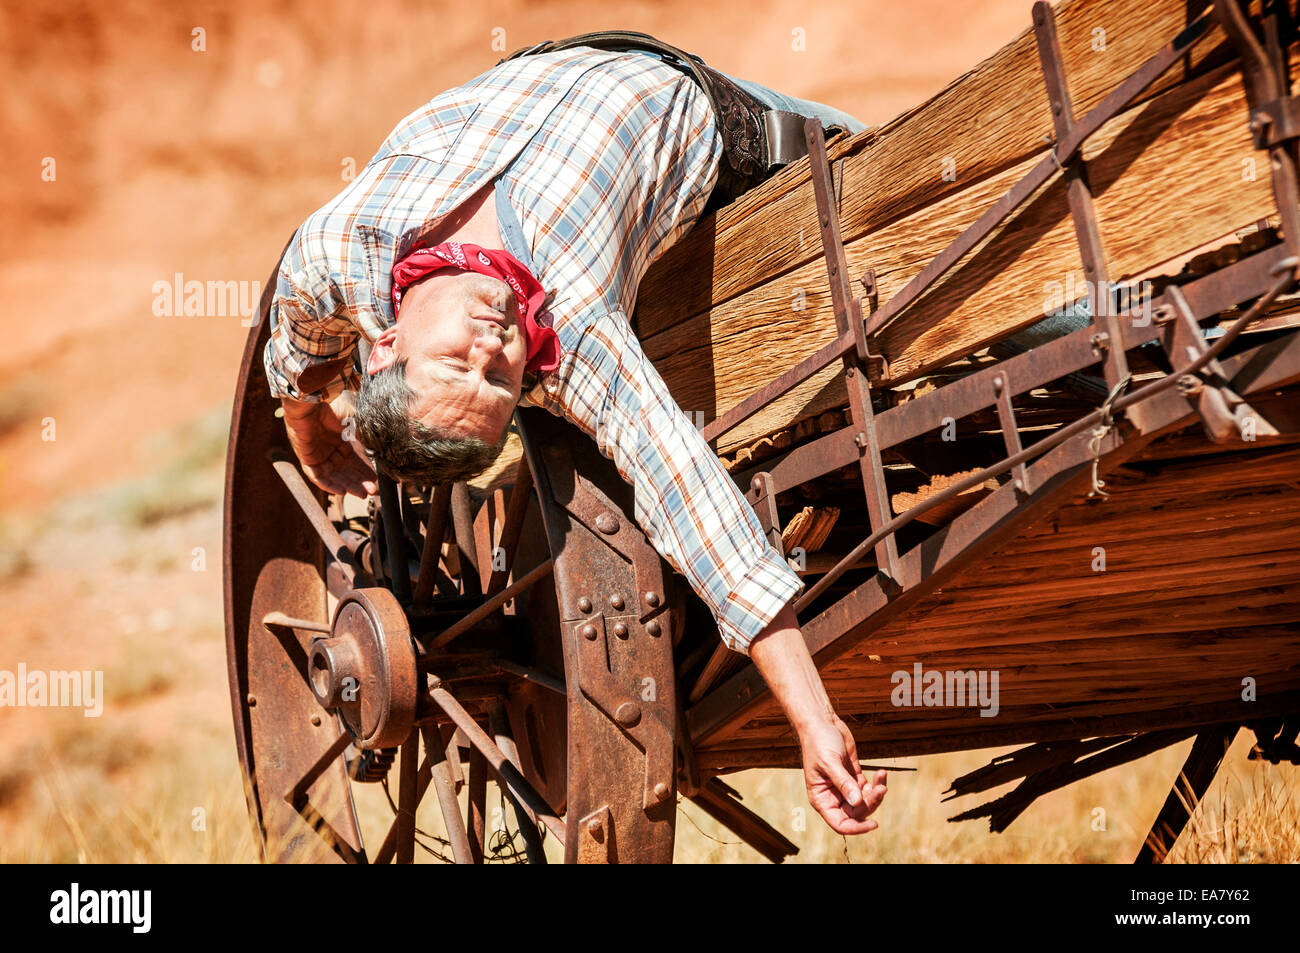 SOUT WEST - A cowboy takes time to rest and reflect. - Stock Image